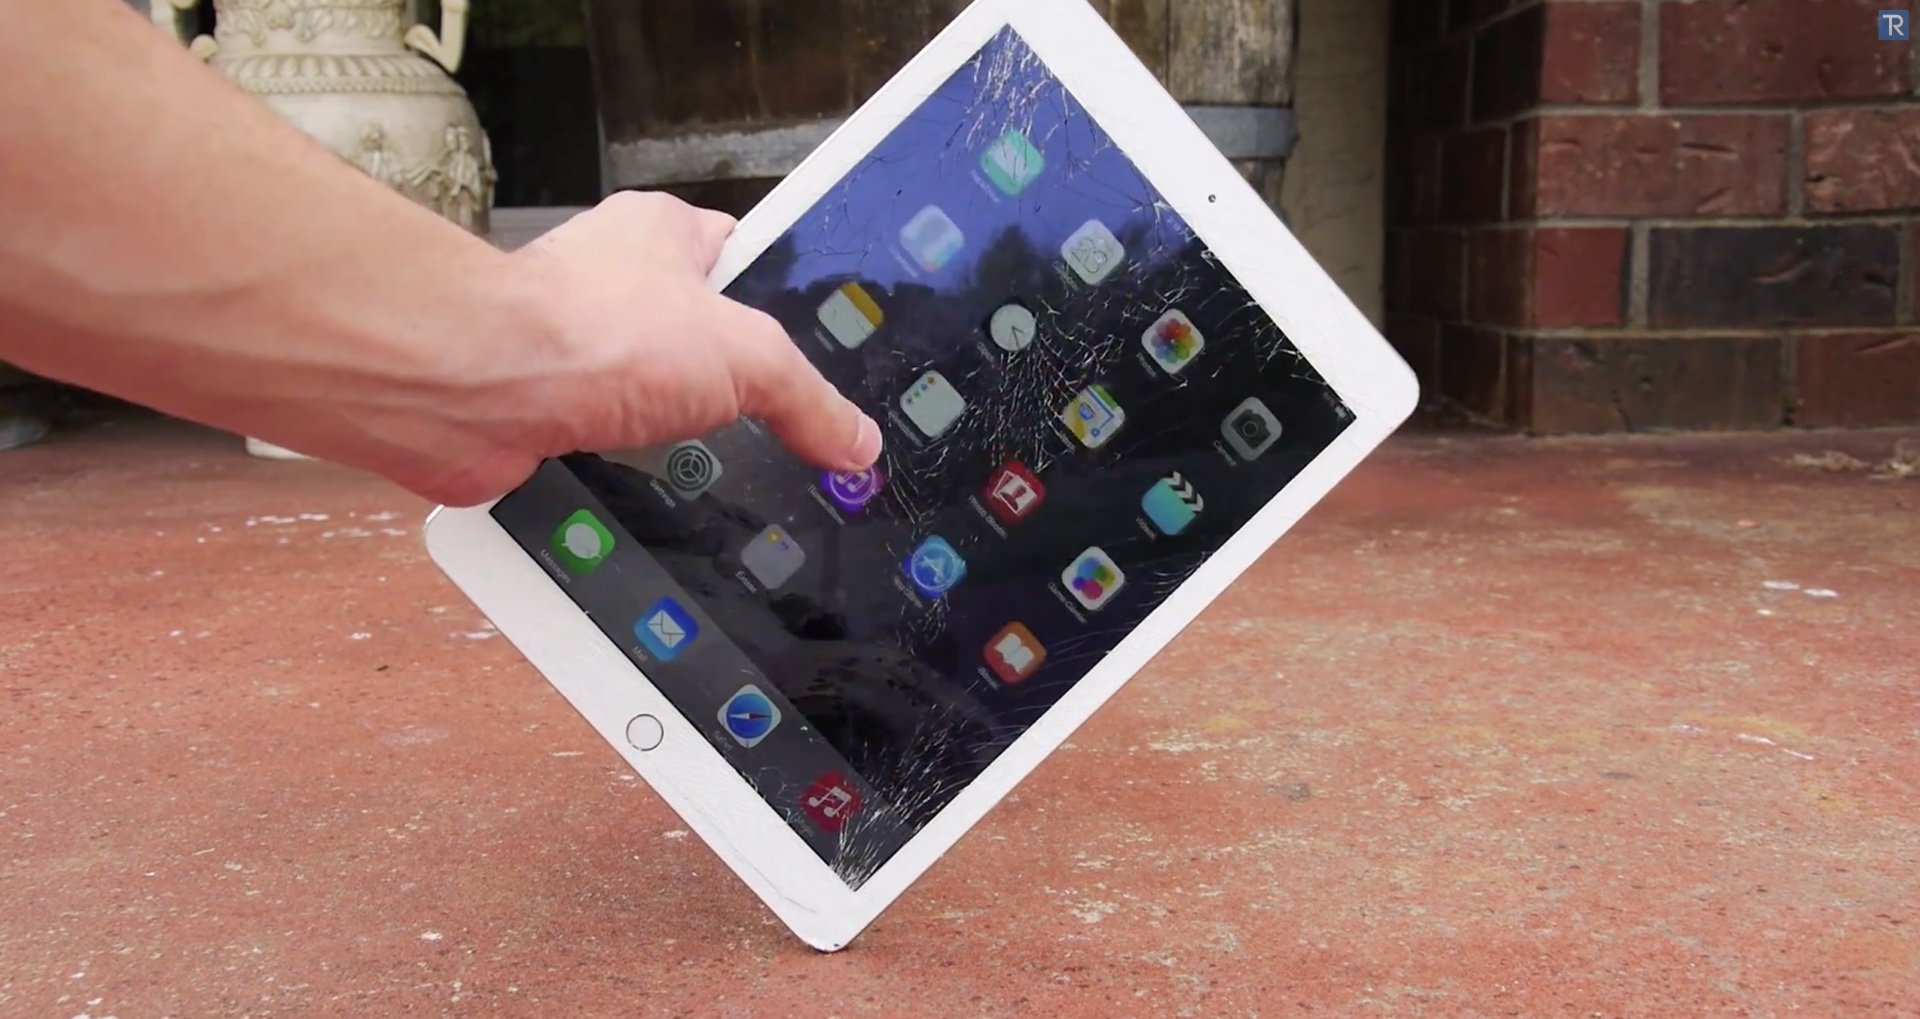 iPad Air 2 (drop test 001)